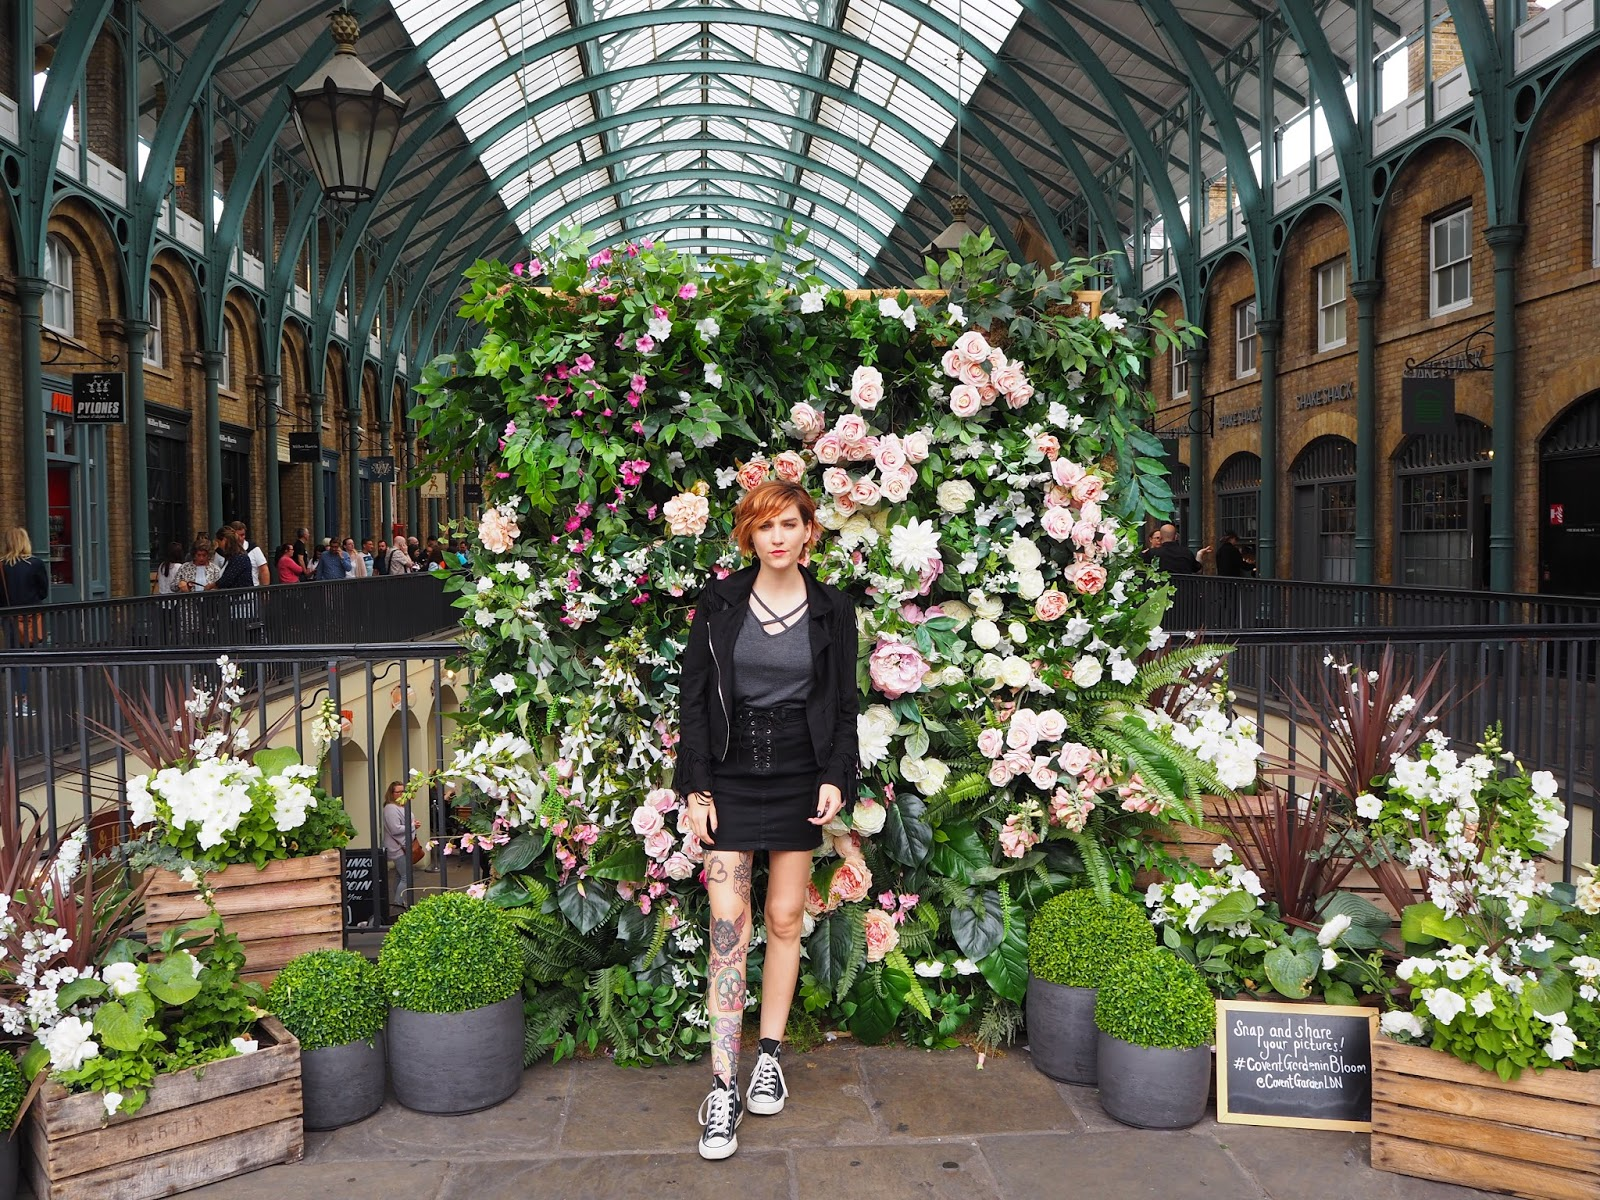 Covent Garden flower wall, bybusby bio image